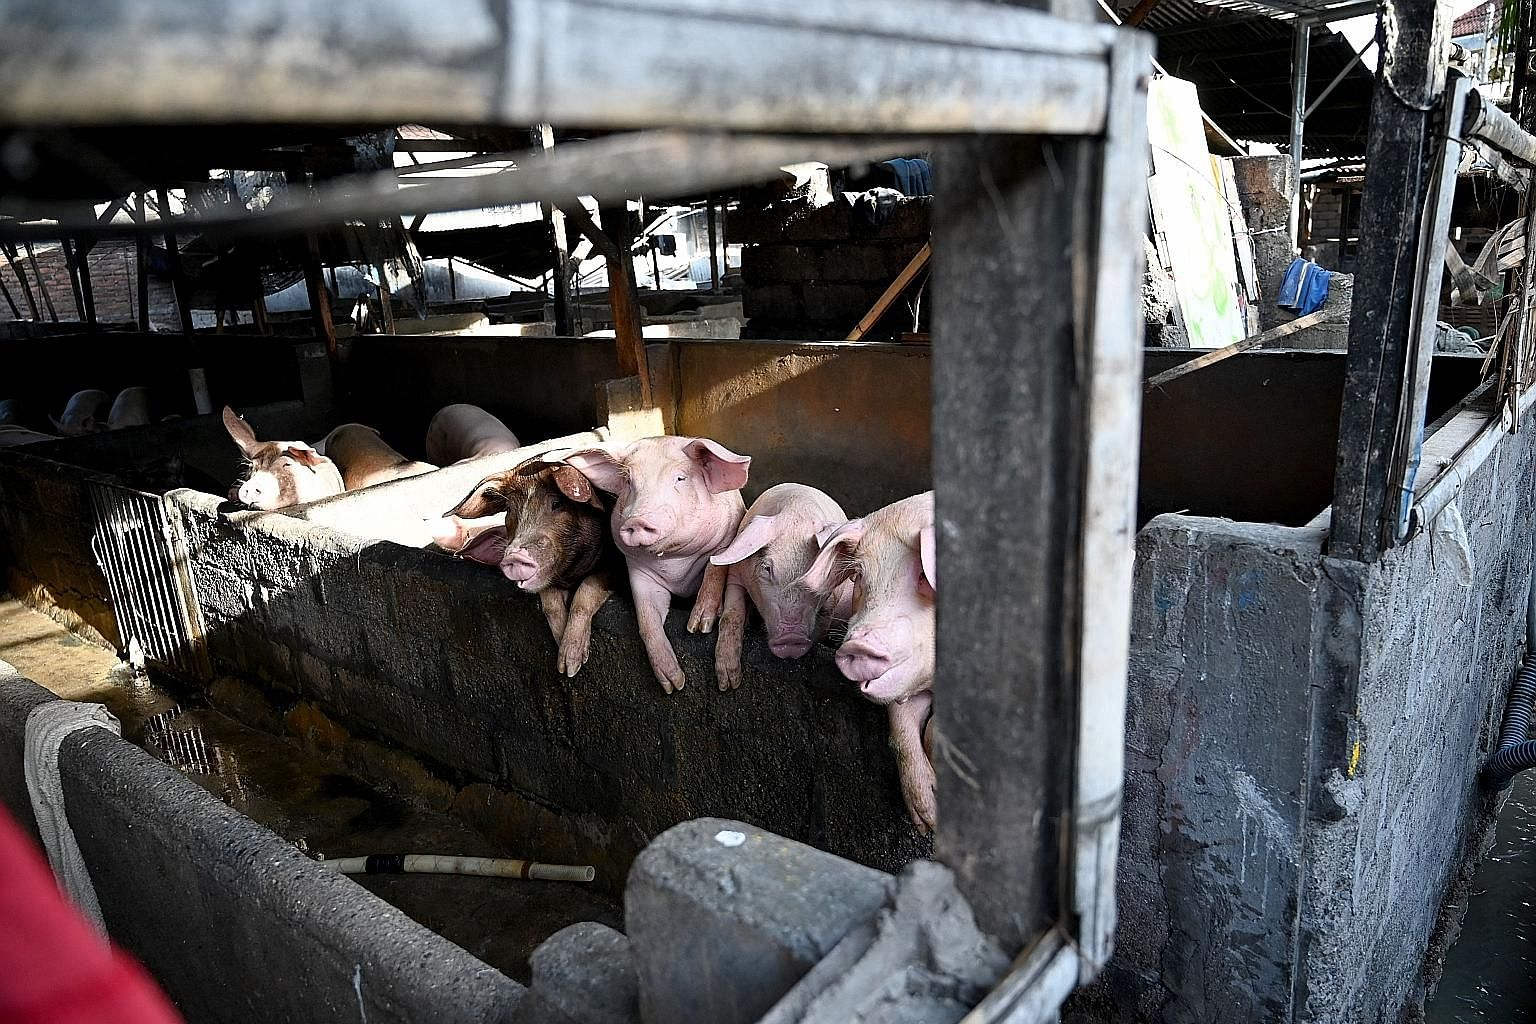 African swine fever is a highly contagious disease which kills pigs, but is not harmful to humans.